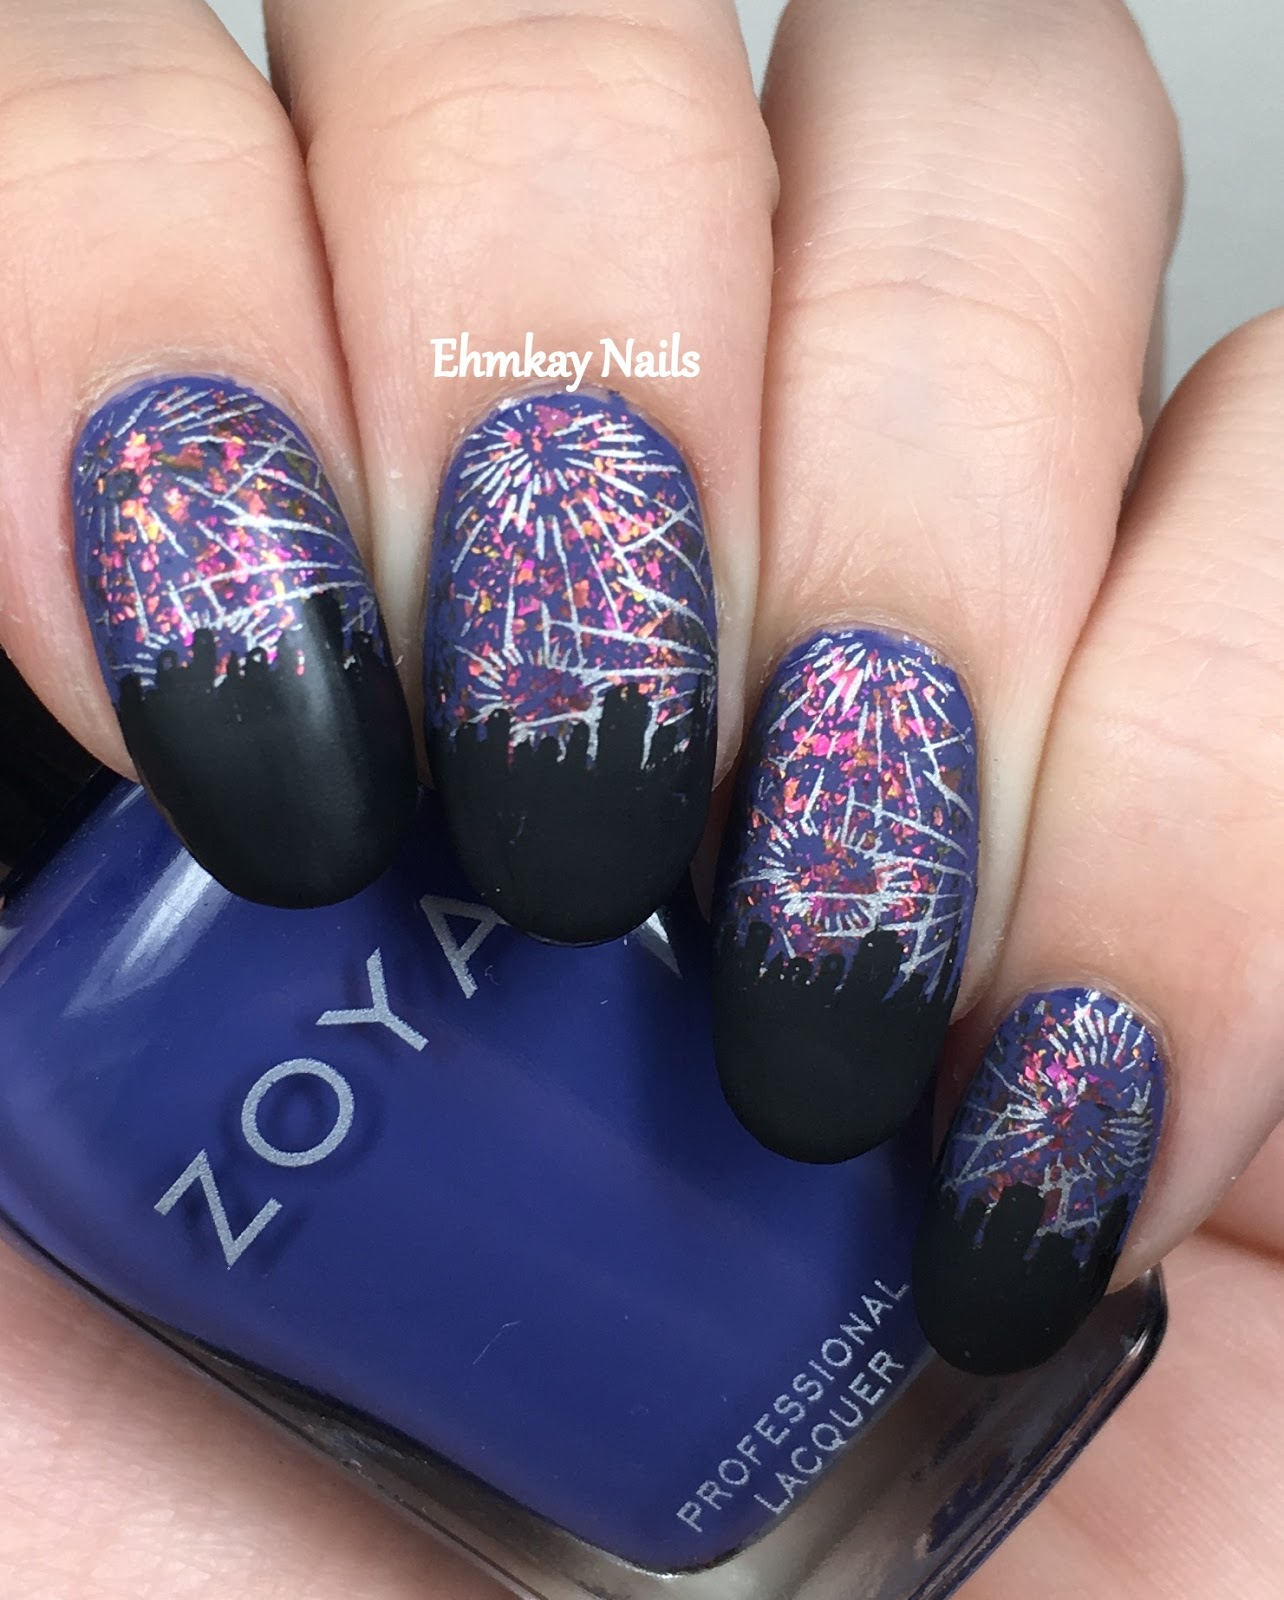 Ehmkay Nails: Winter Nail Art Challenge: Fireworks Over